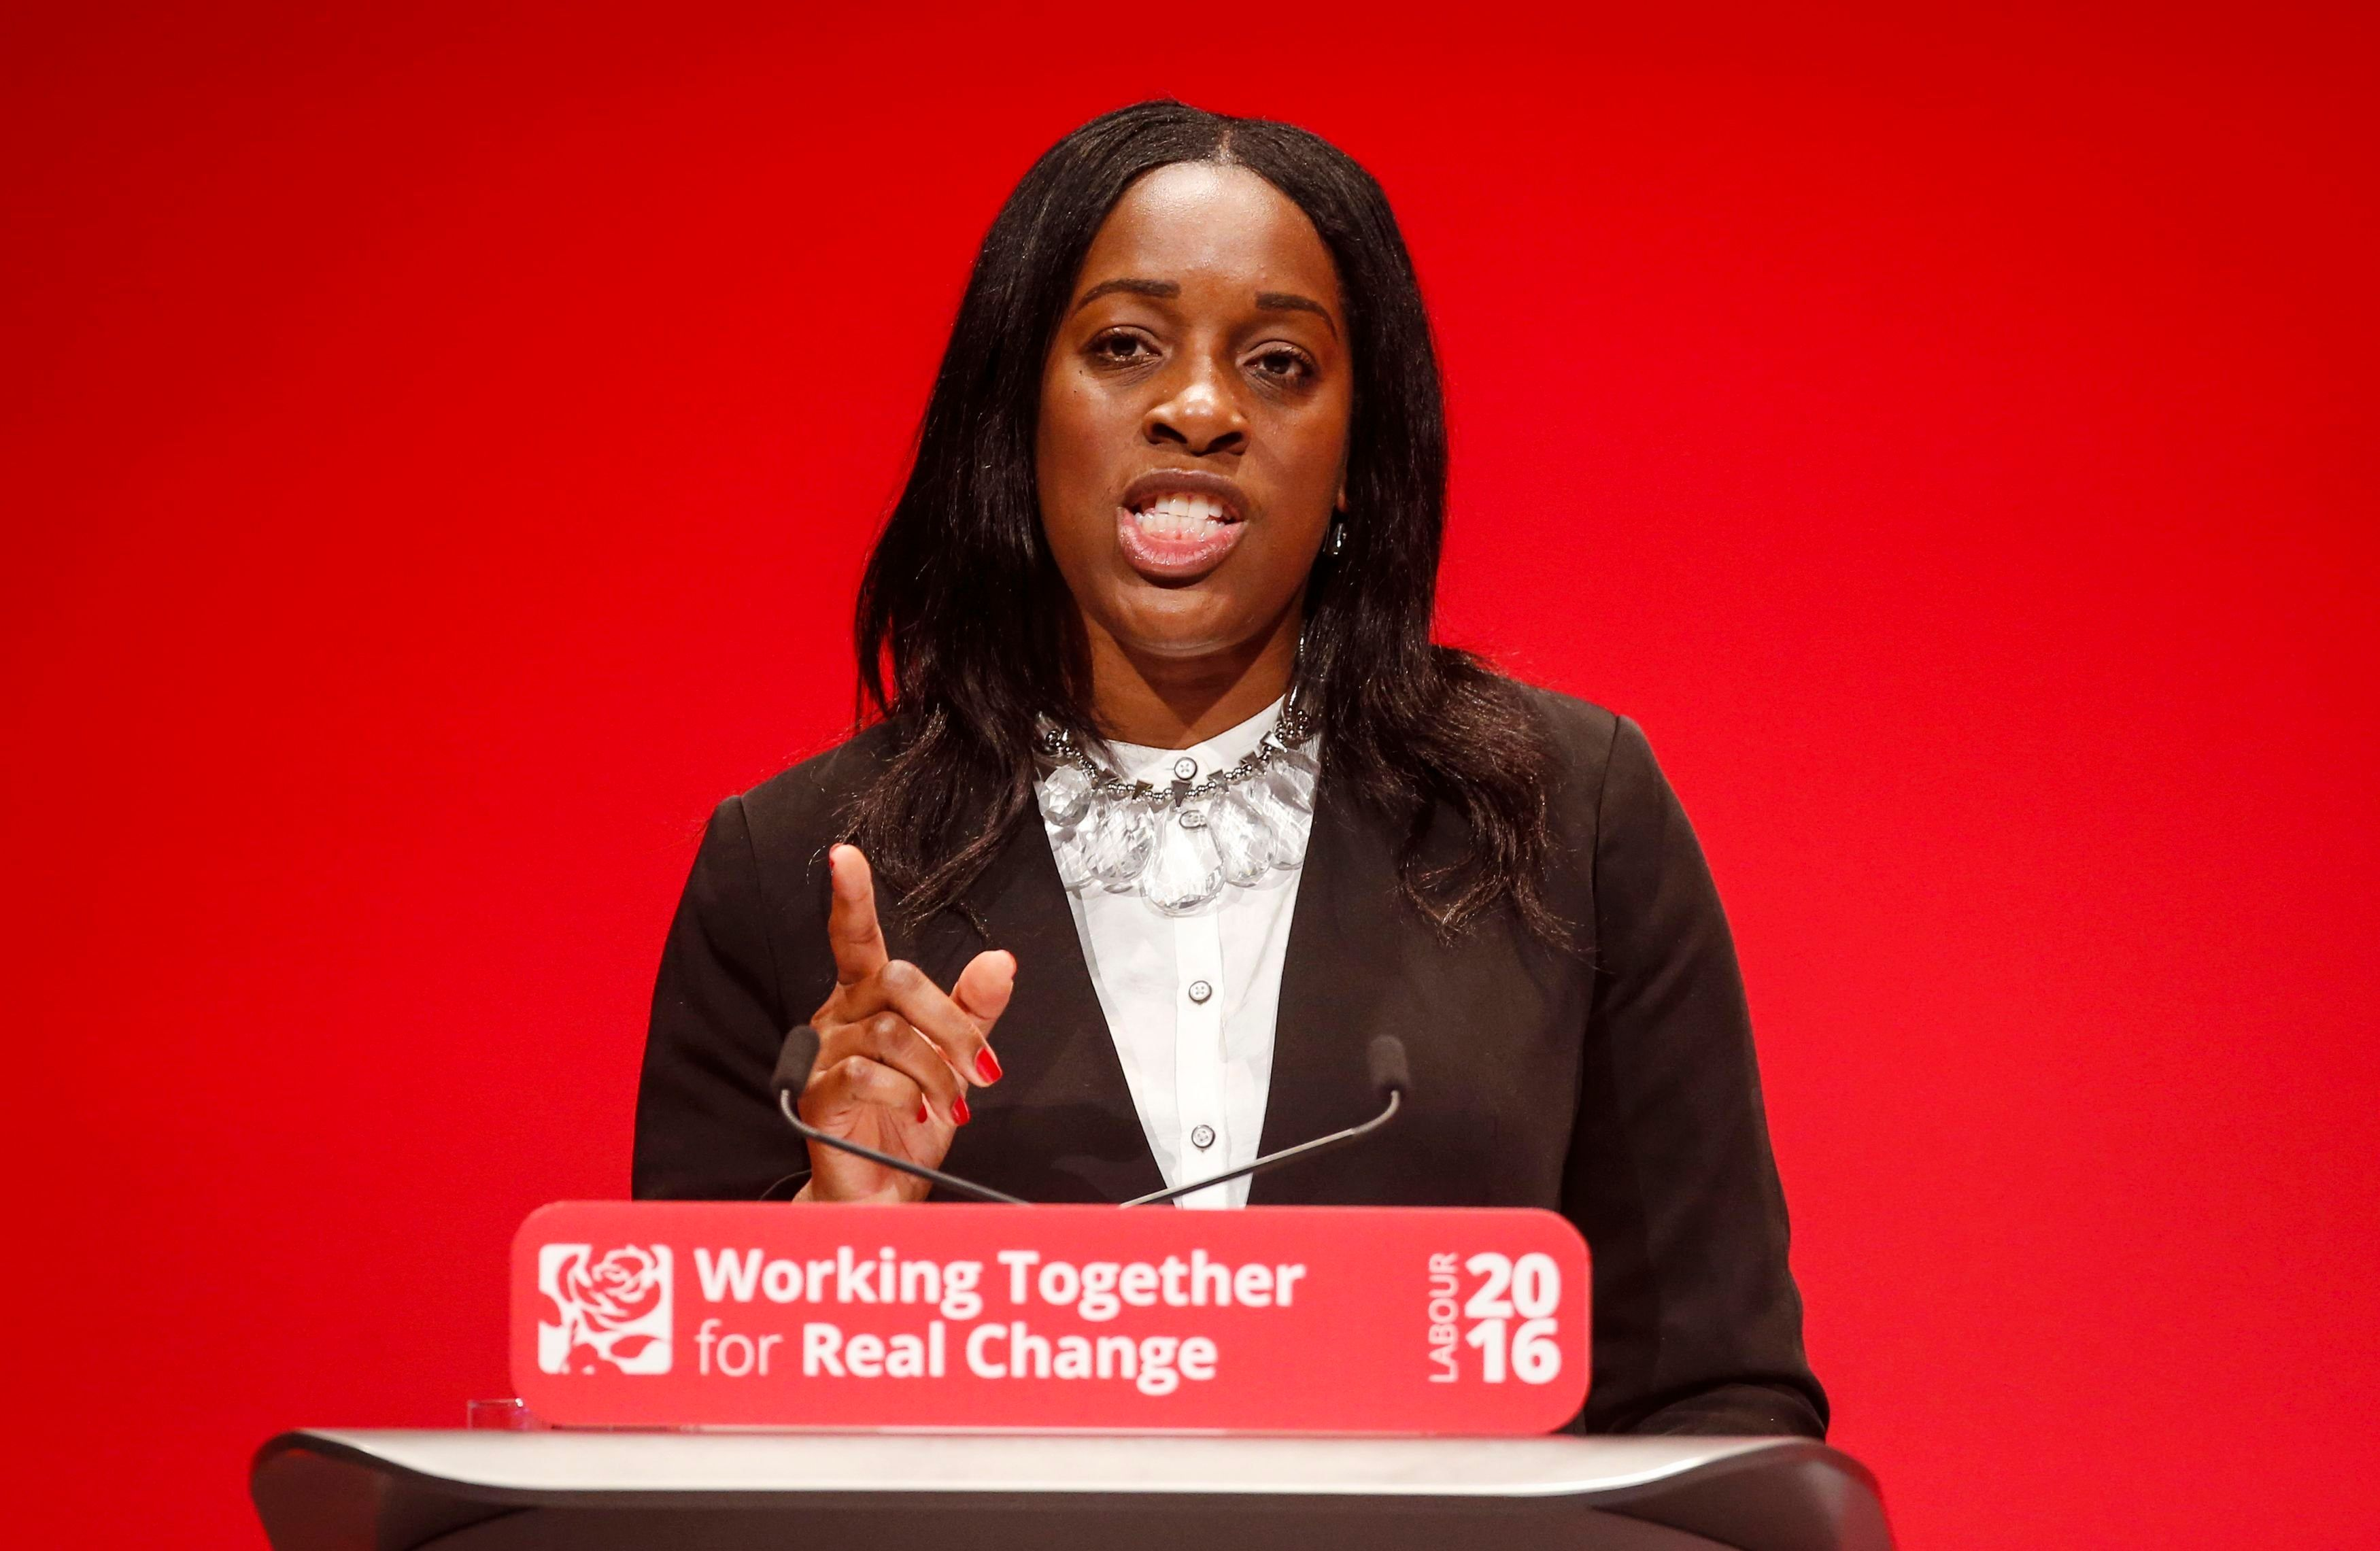 Kate Osamor Resigns From Shadow Cabinet After 'Throwing Bucket Of Water At